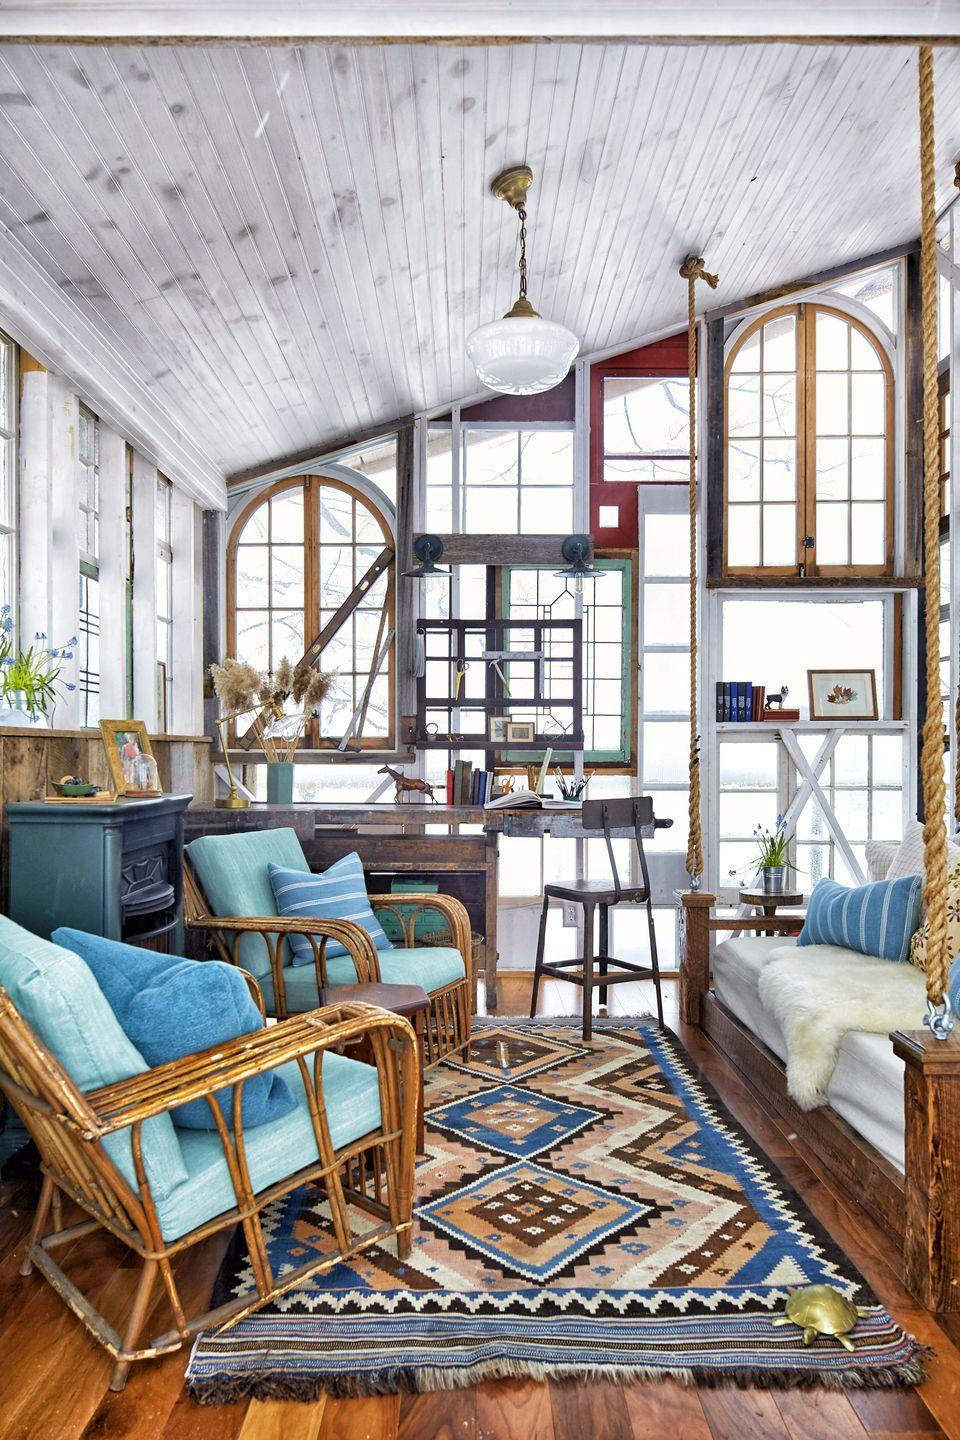 """<p>""""I joke that the structure is a family quilt of salvaged windows, because they came from important people in our lives,"""" Christina says. """"We got windows from my husband's, aunt, my mom, an old landlord..."""" </p><p><a class=""""link rapid-noclick-resp"""" href=""""https://www.amazon.com/Life-Changing-Magic-Tidying-Decluttering-Organizing/dp/1607747308?tag=syn-yahoo-20&ascsubtag=%5Bartid%7C10050.g.1887%5Bsrc%7Cyahoo-us"""" rel=""""nofollow noopener"""" target=""""_blank"""" data-ylk=""""slk:SHOP BOOKS ABOUT TIDYING"""">SHOP BOOKS ABOUT TIDYING</a></p>"""